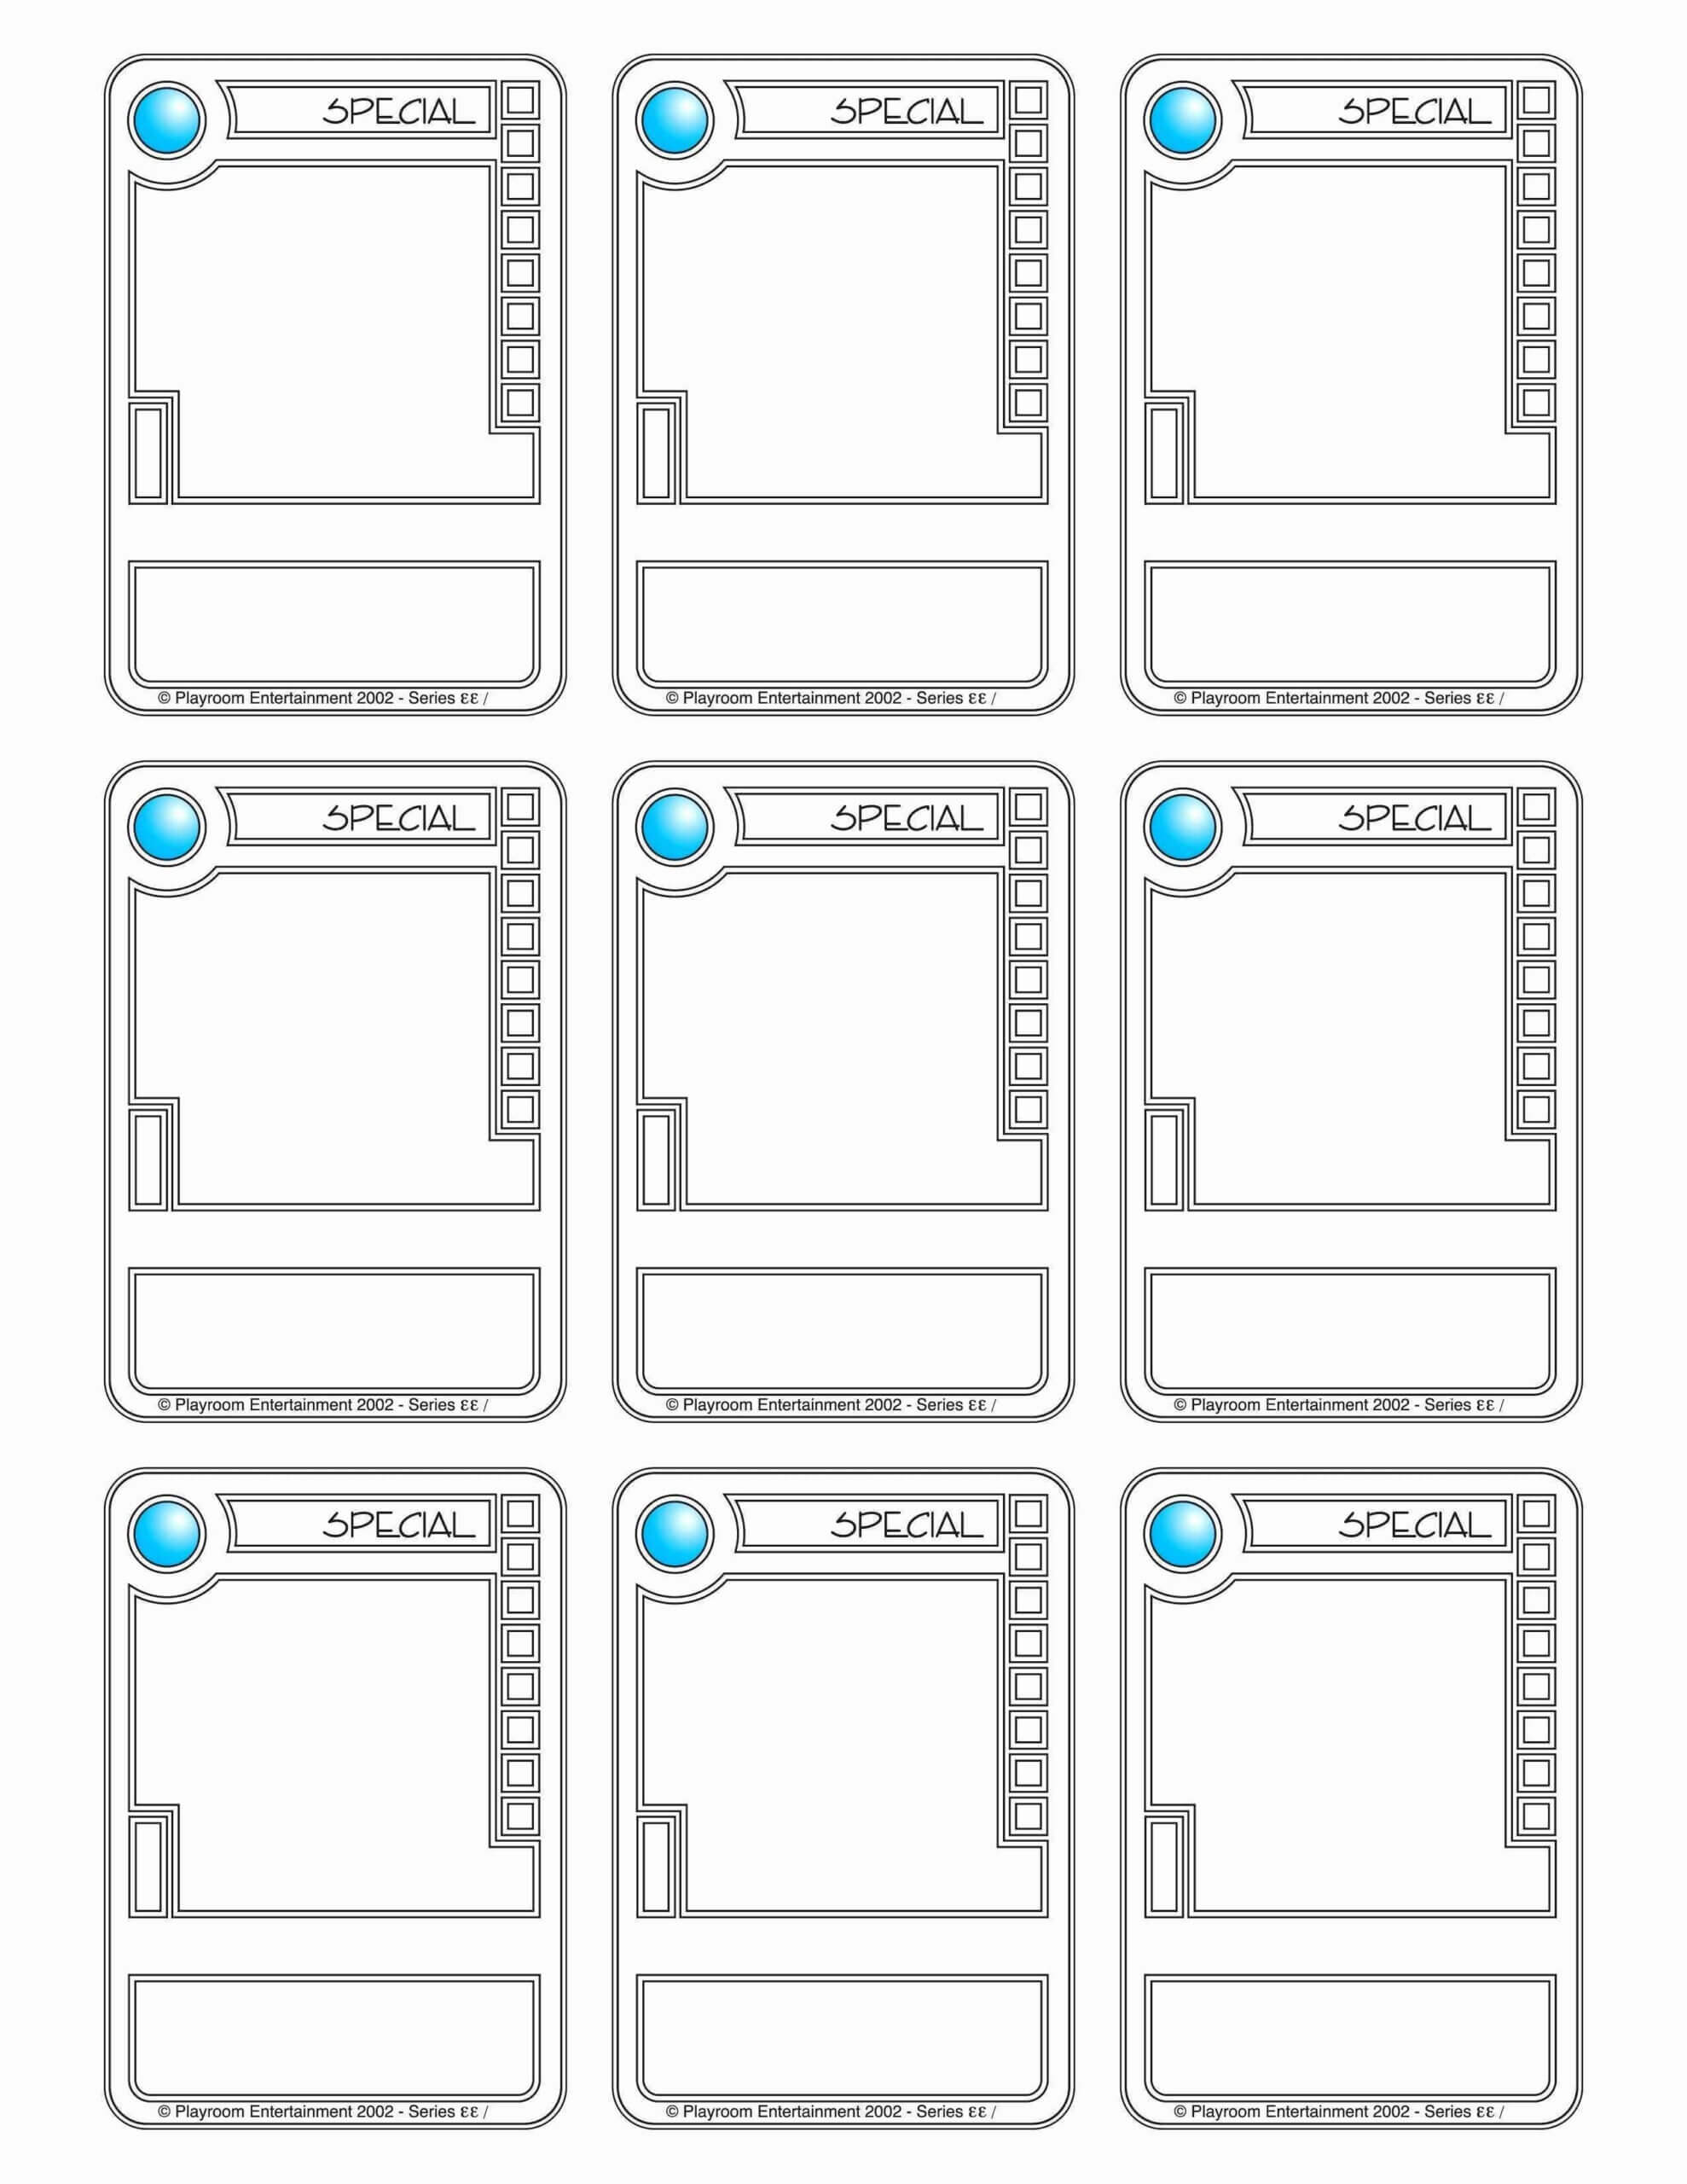 001 Trading Card Maker Free Examples Template For Success In With Template For Game Cards